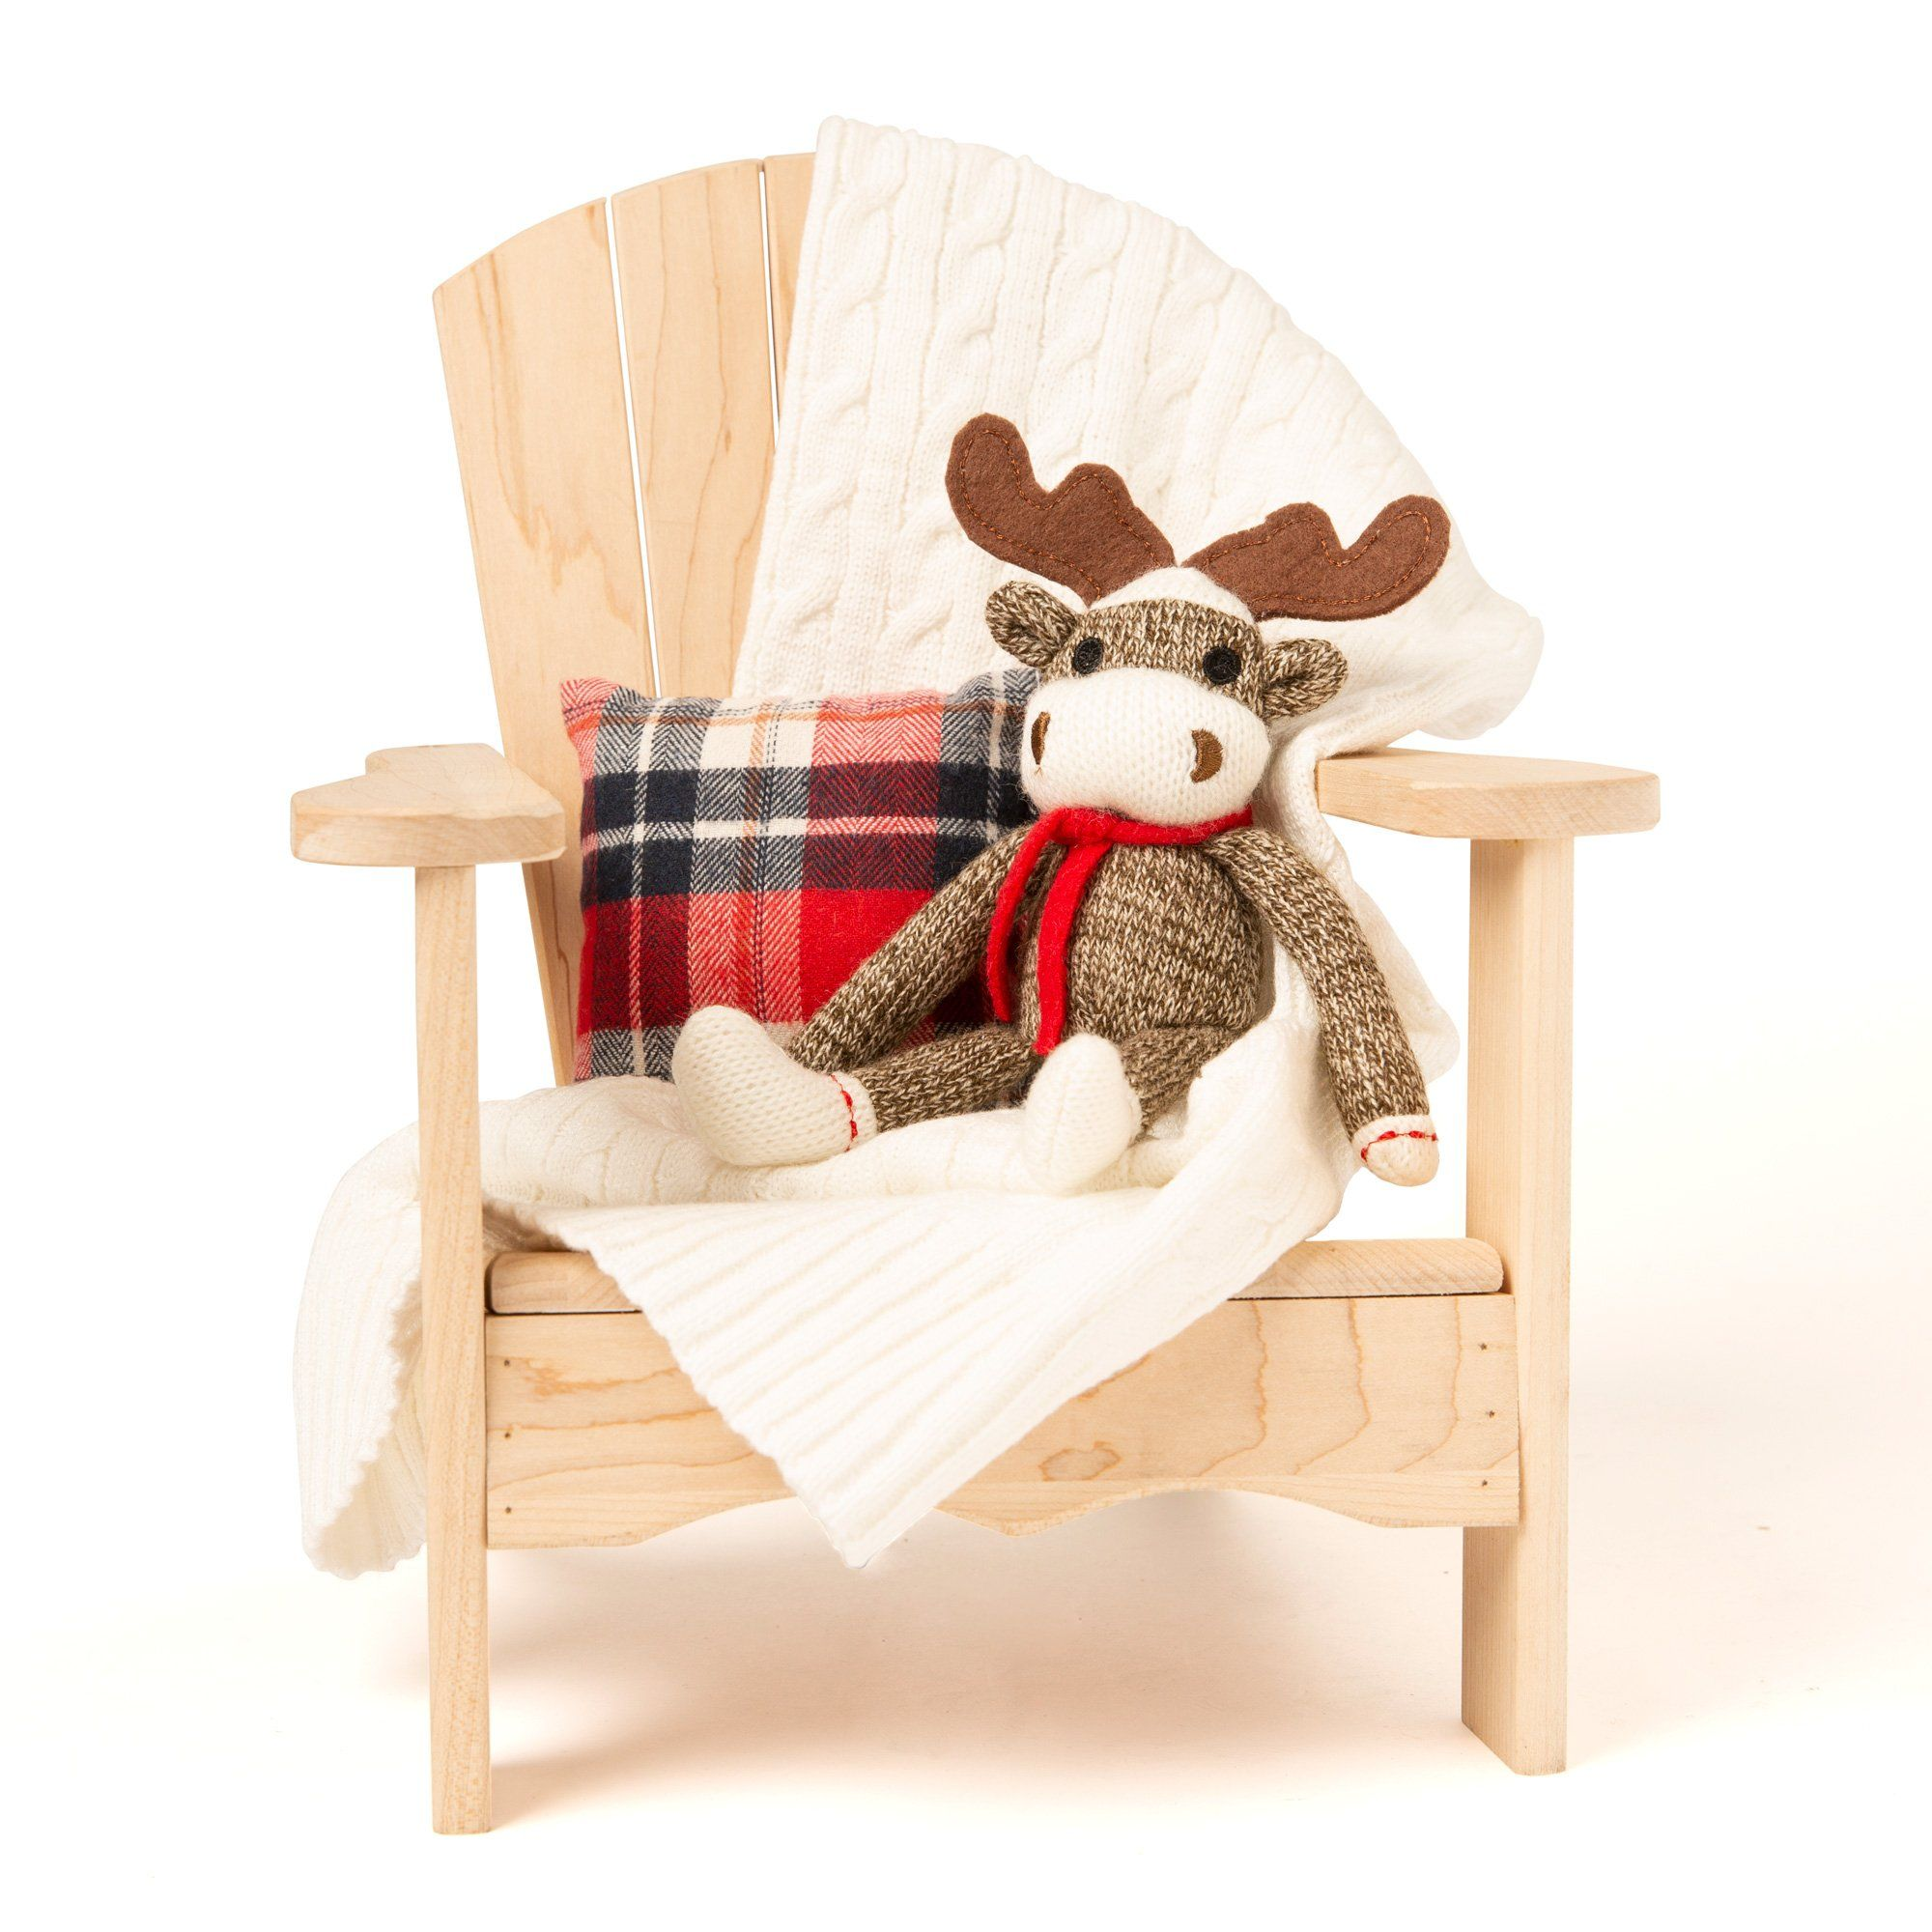 Set includes a soft cable knit blanket, plaid throw pillow and adorable sock monkey moose!